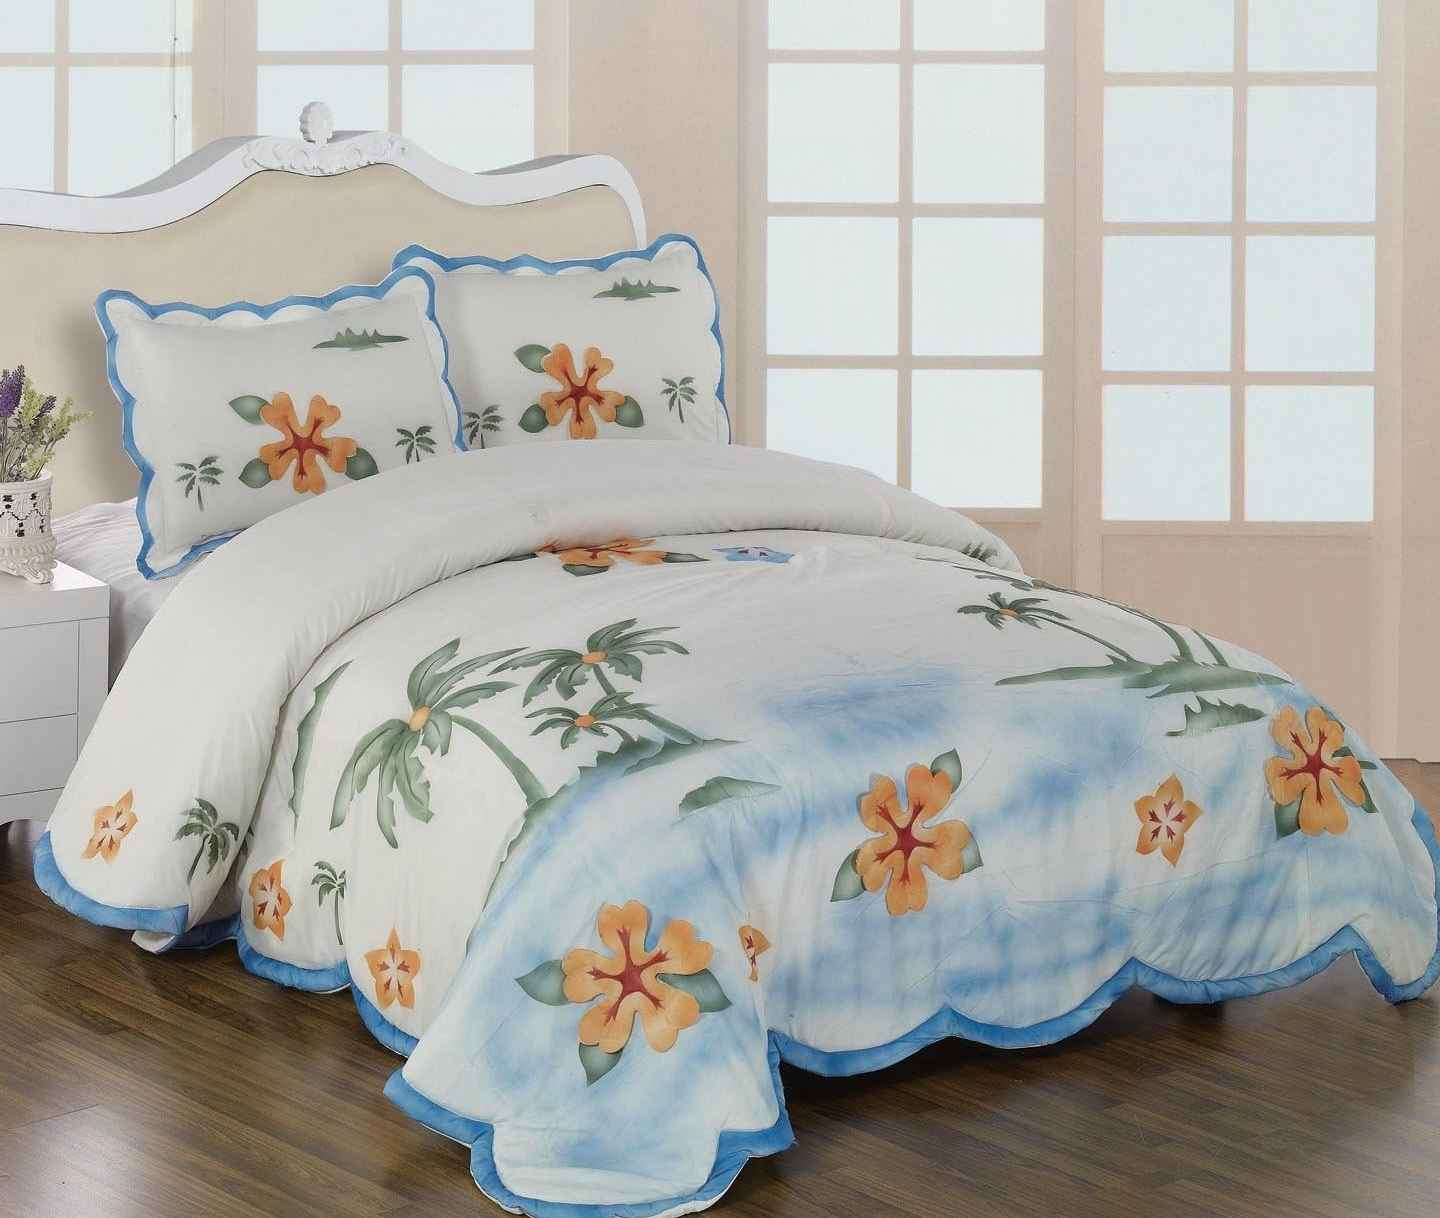 Queen size beds comforter in flower motif